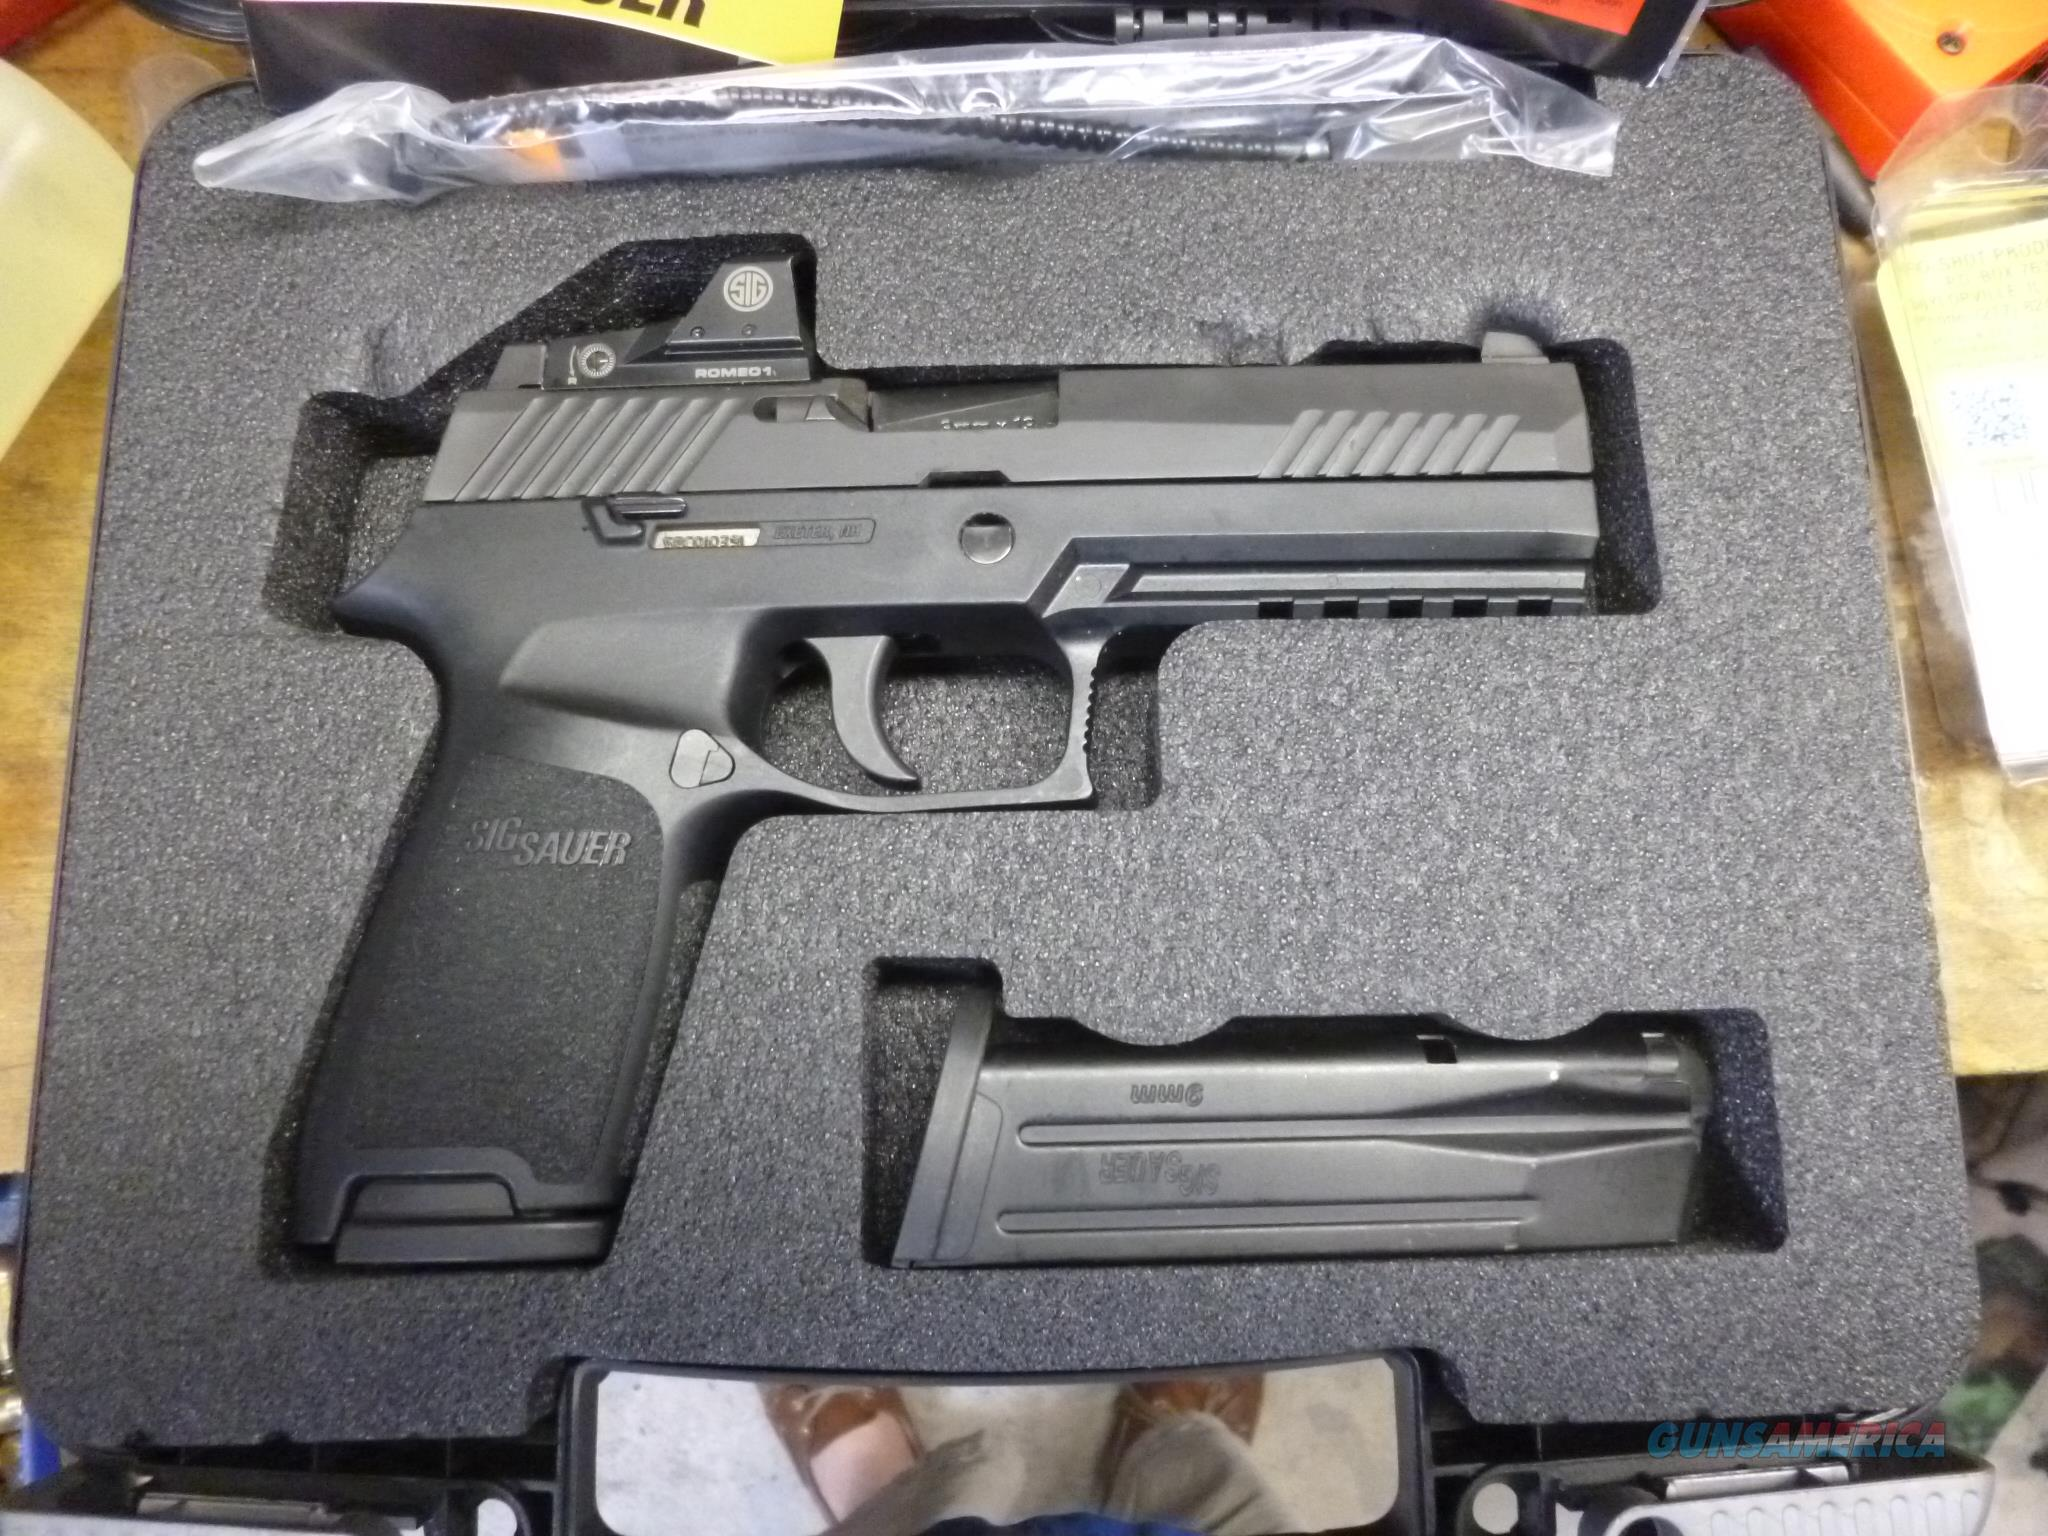 SIG P320 RX with Romeo Red Dot Sight